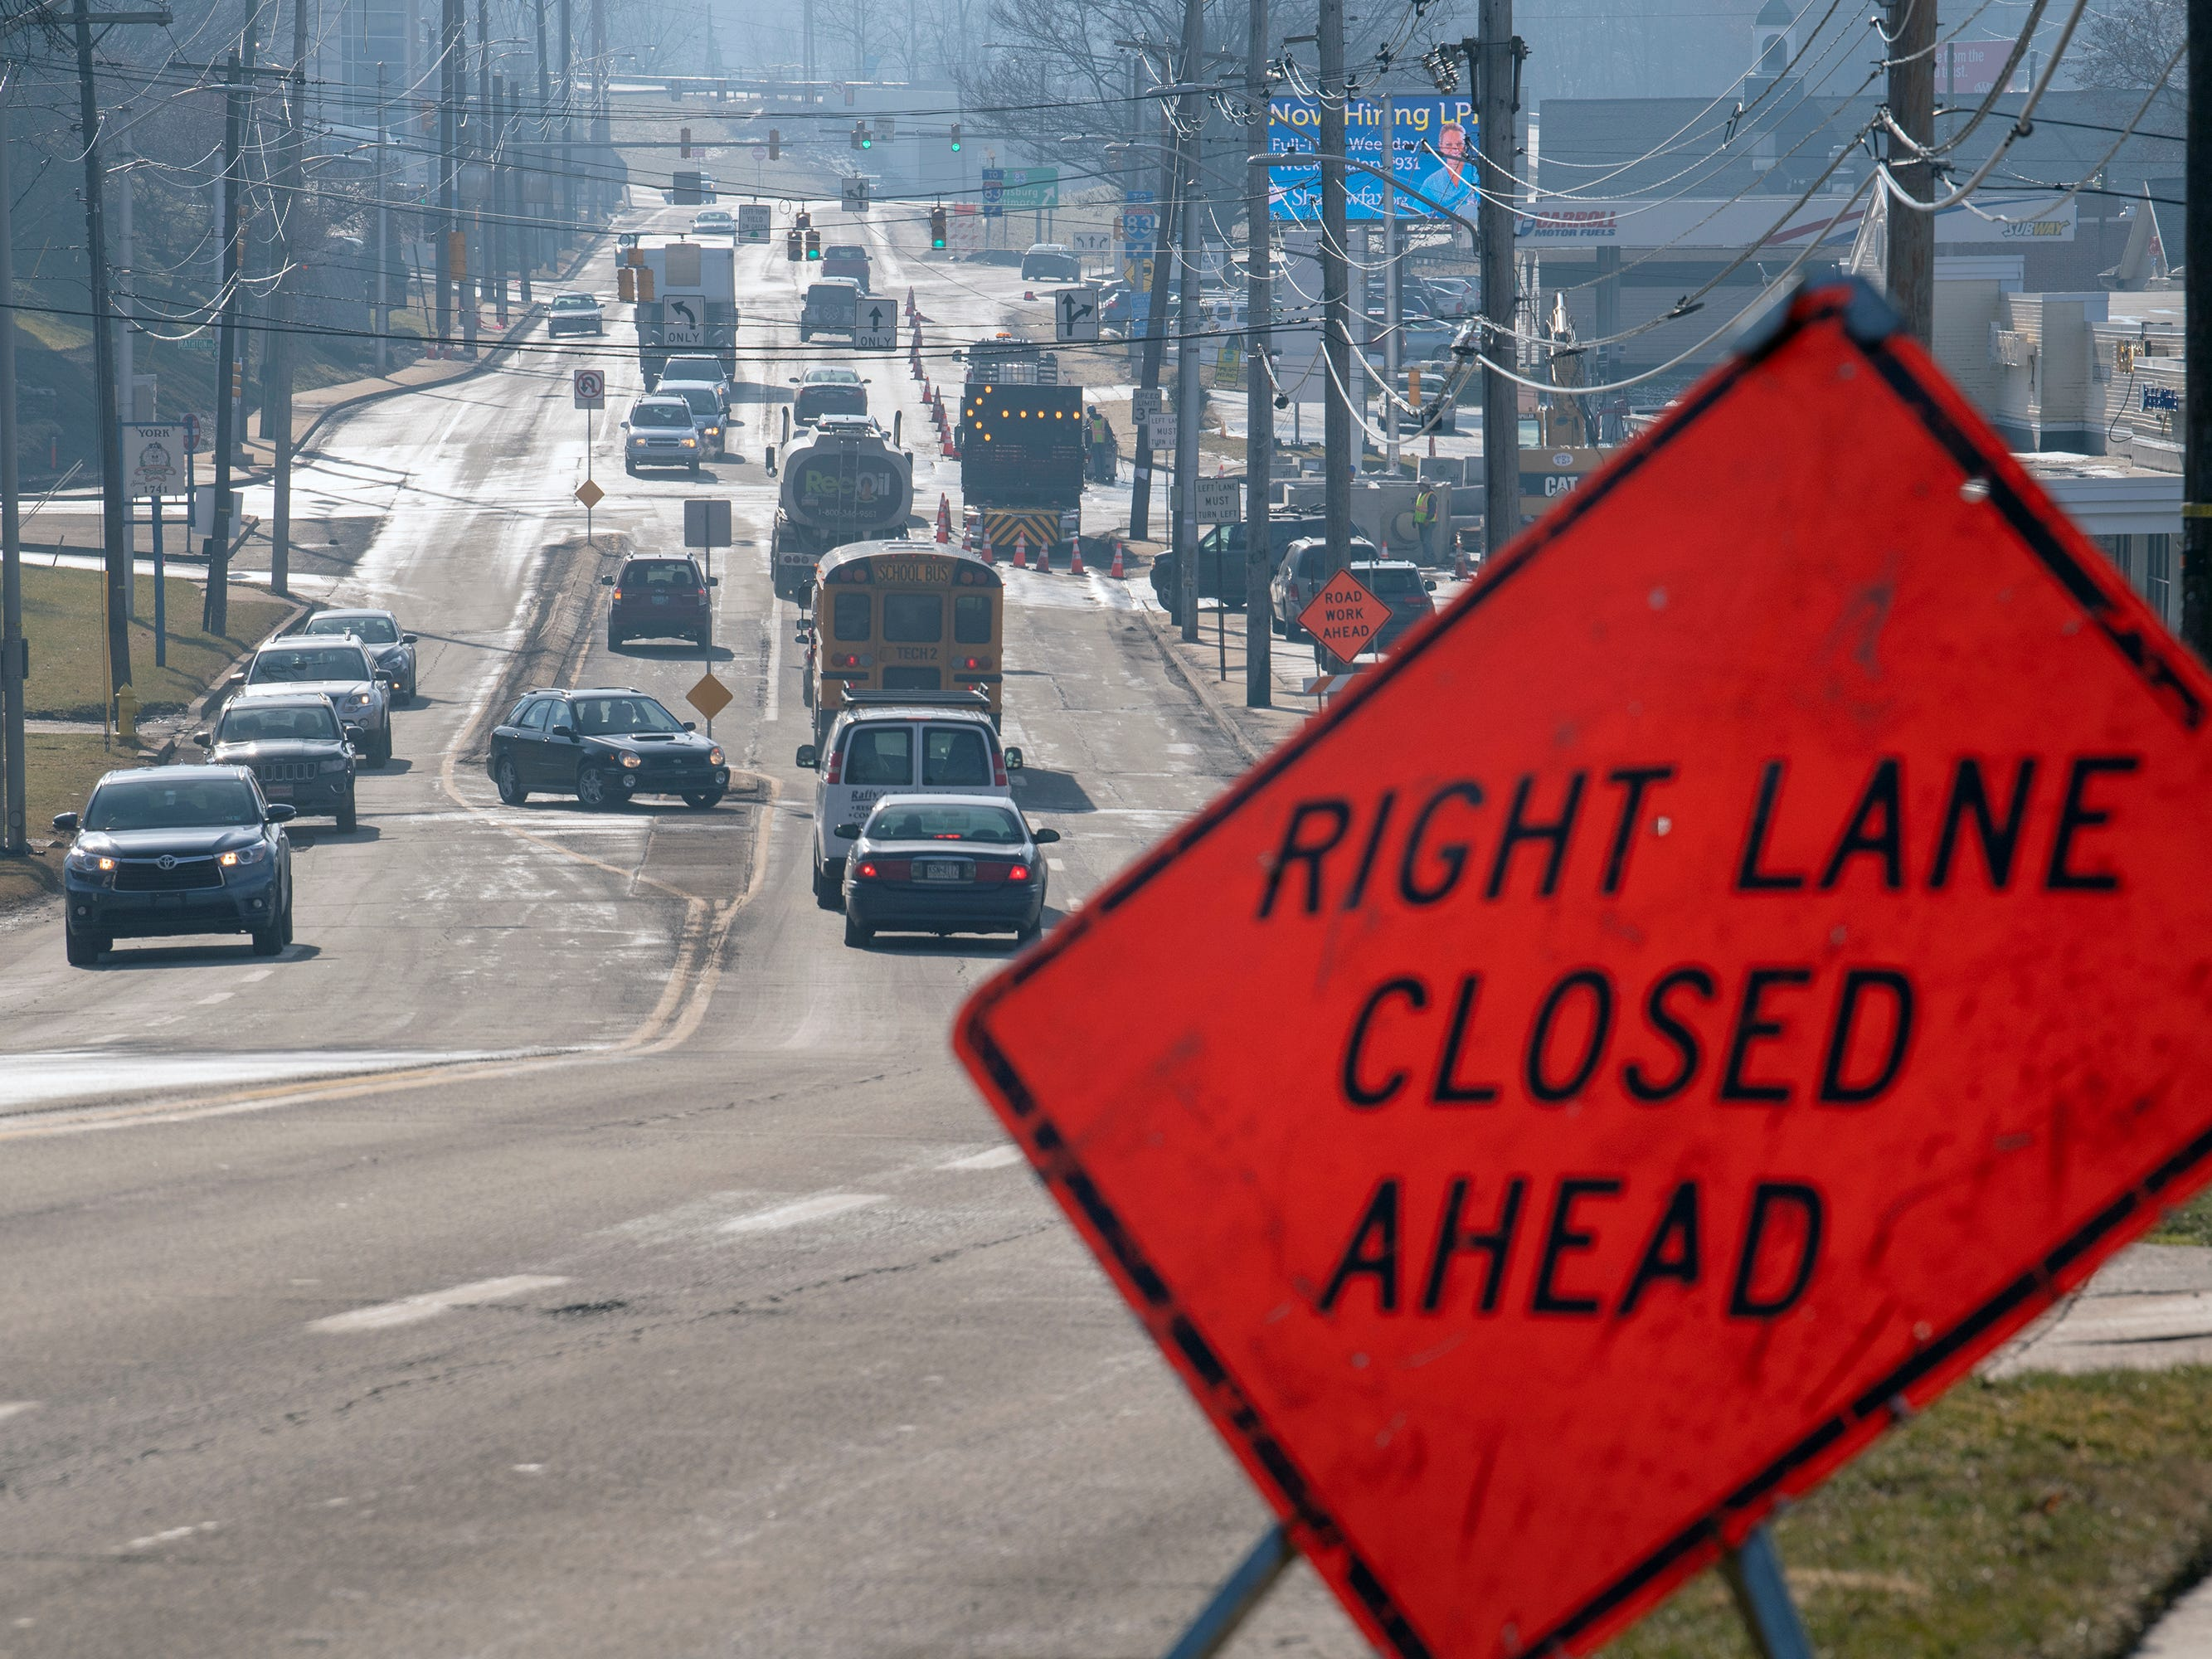 Looking south on South George Street through the intersection of Rathton Road, South George Street and Country Club Roads Tuesday February 5, 2019 where the right lane was closed due to construction.